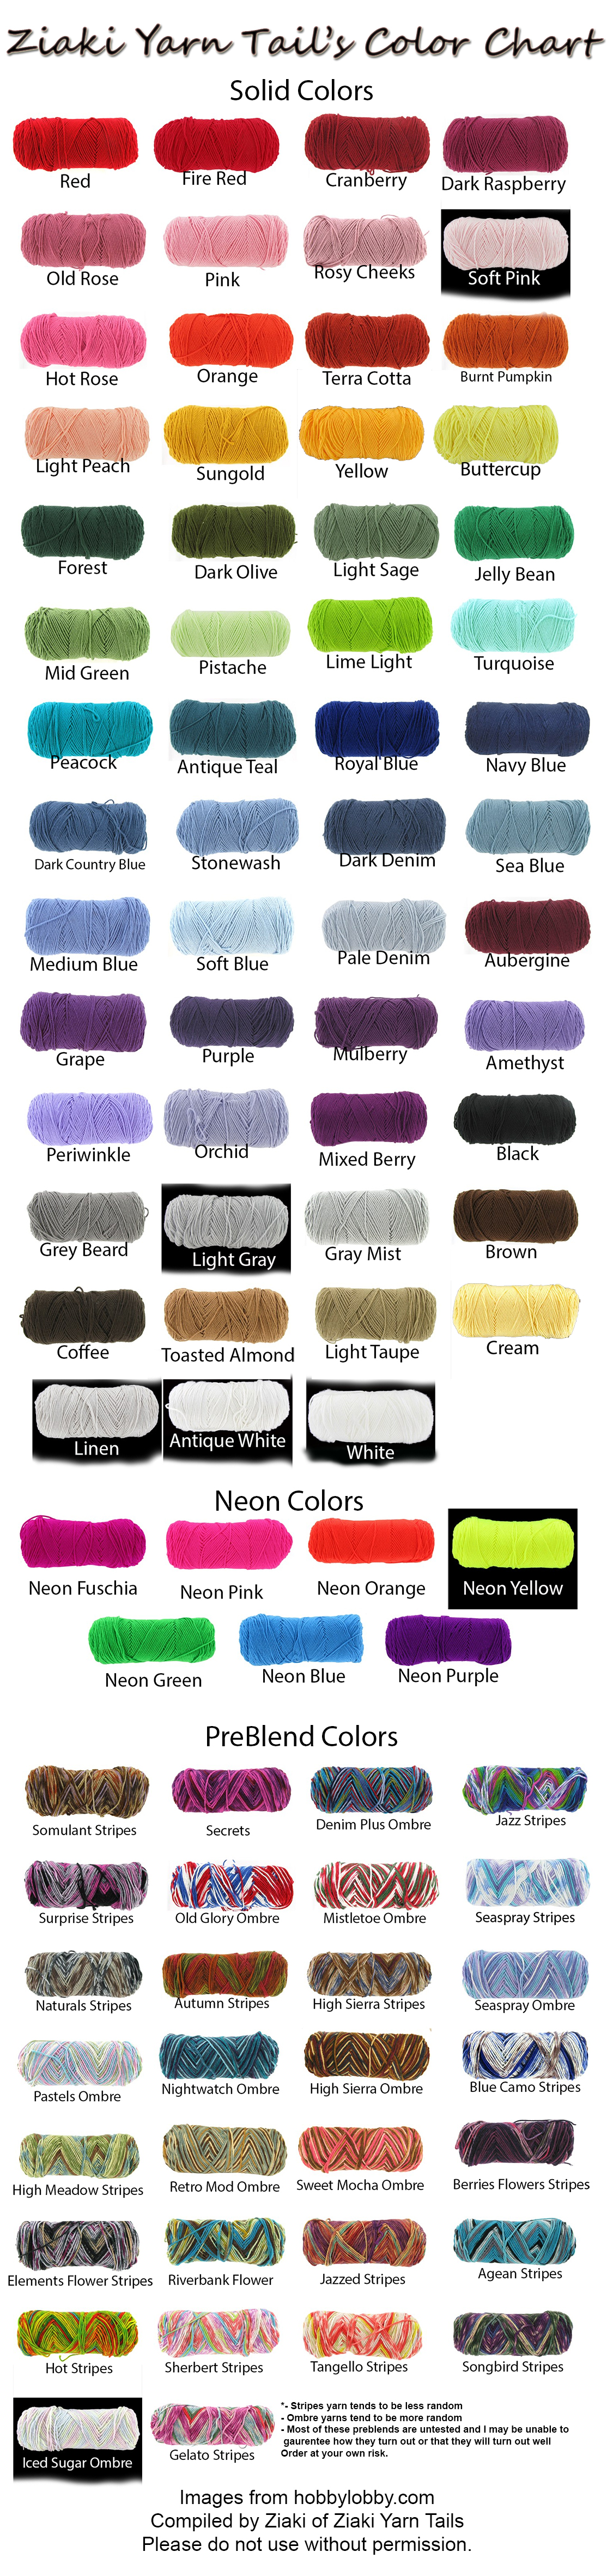 Ziaki Yarn Tails Color Chart By Serenitymoonwolf Crochet